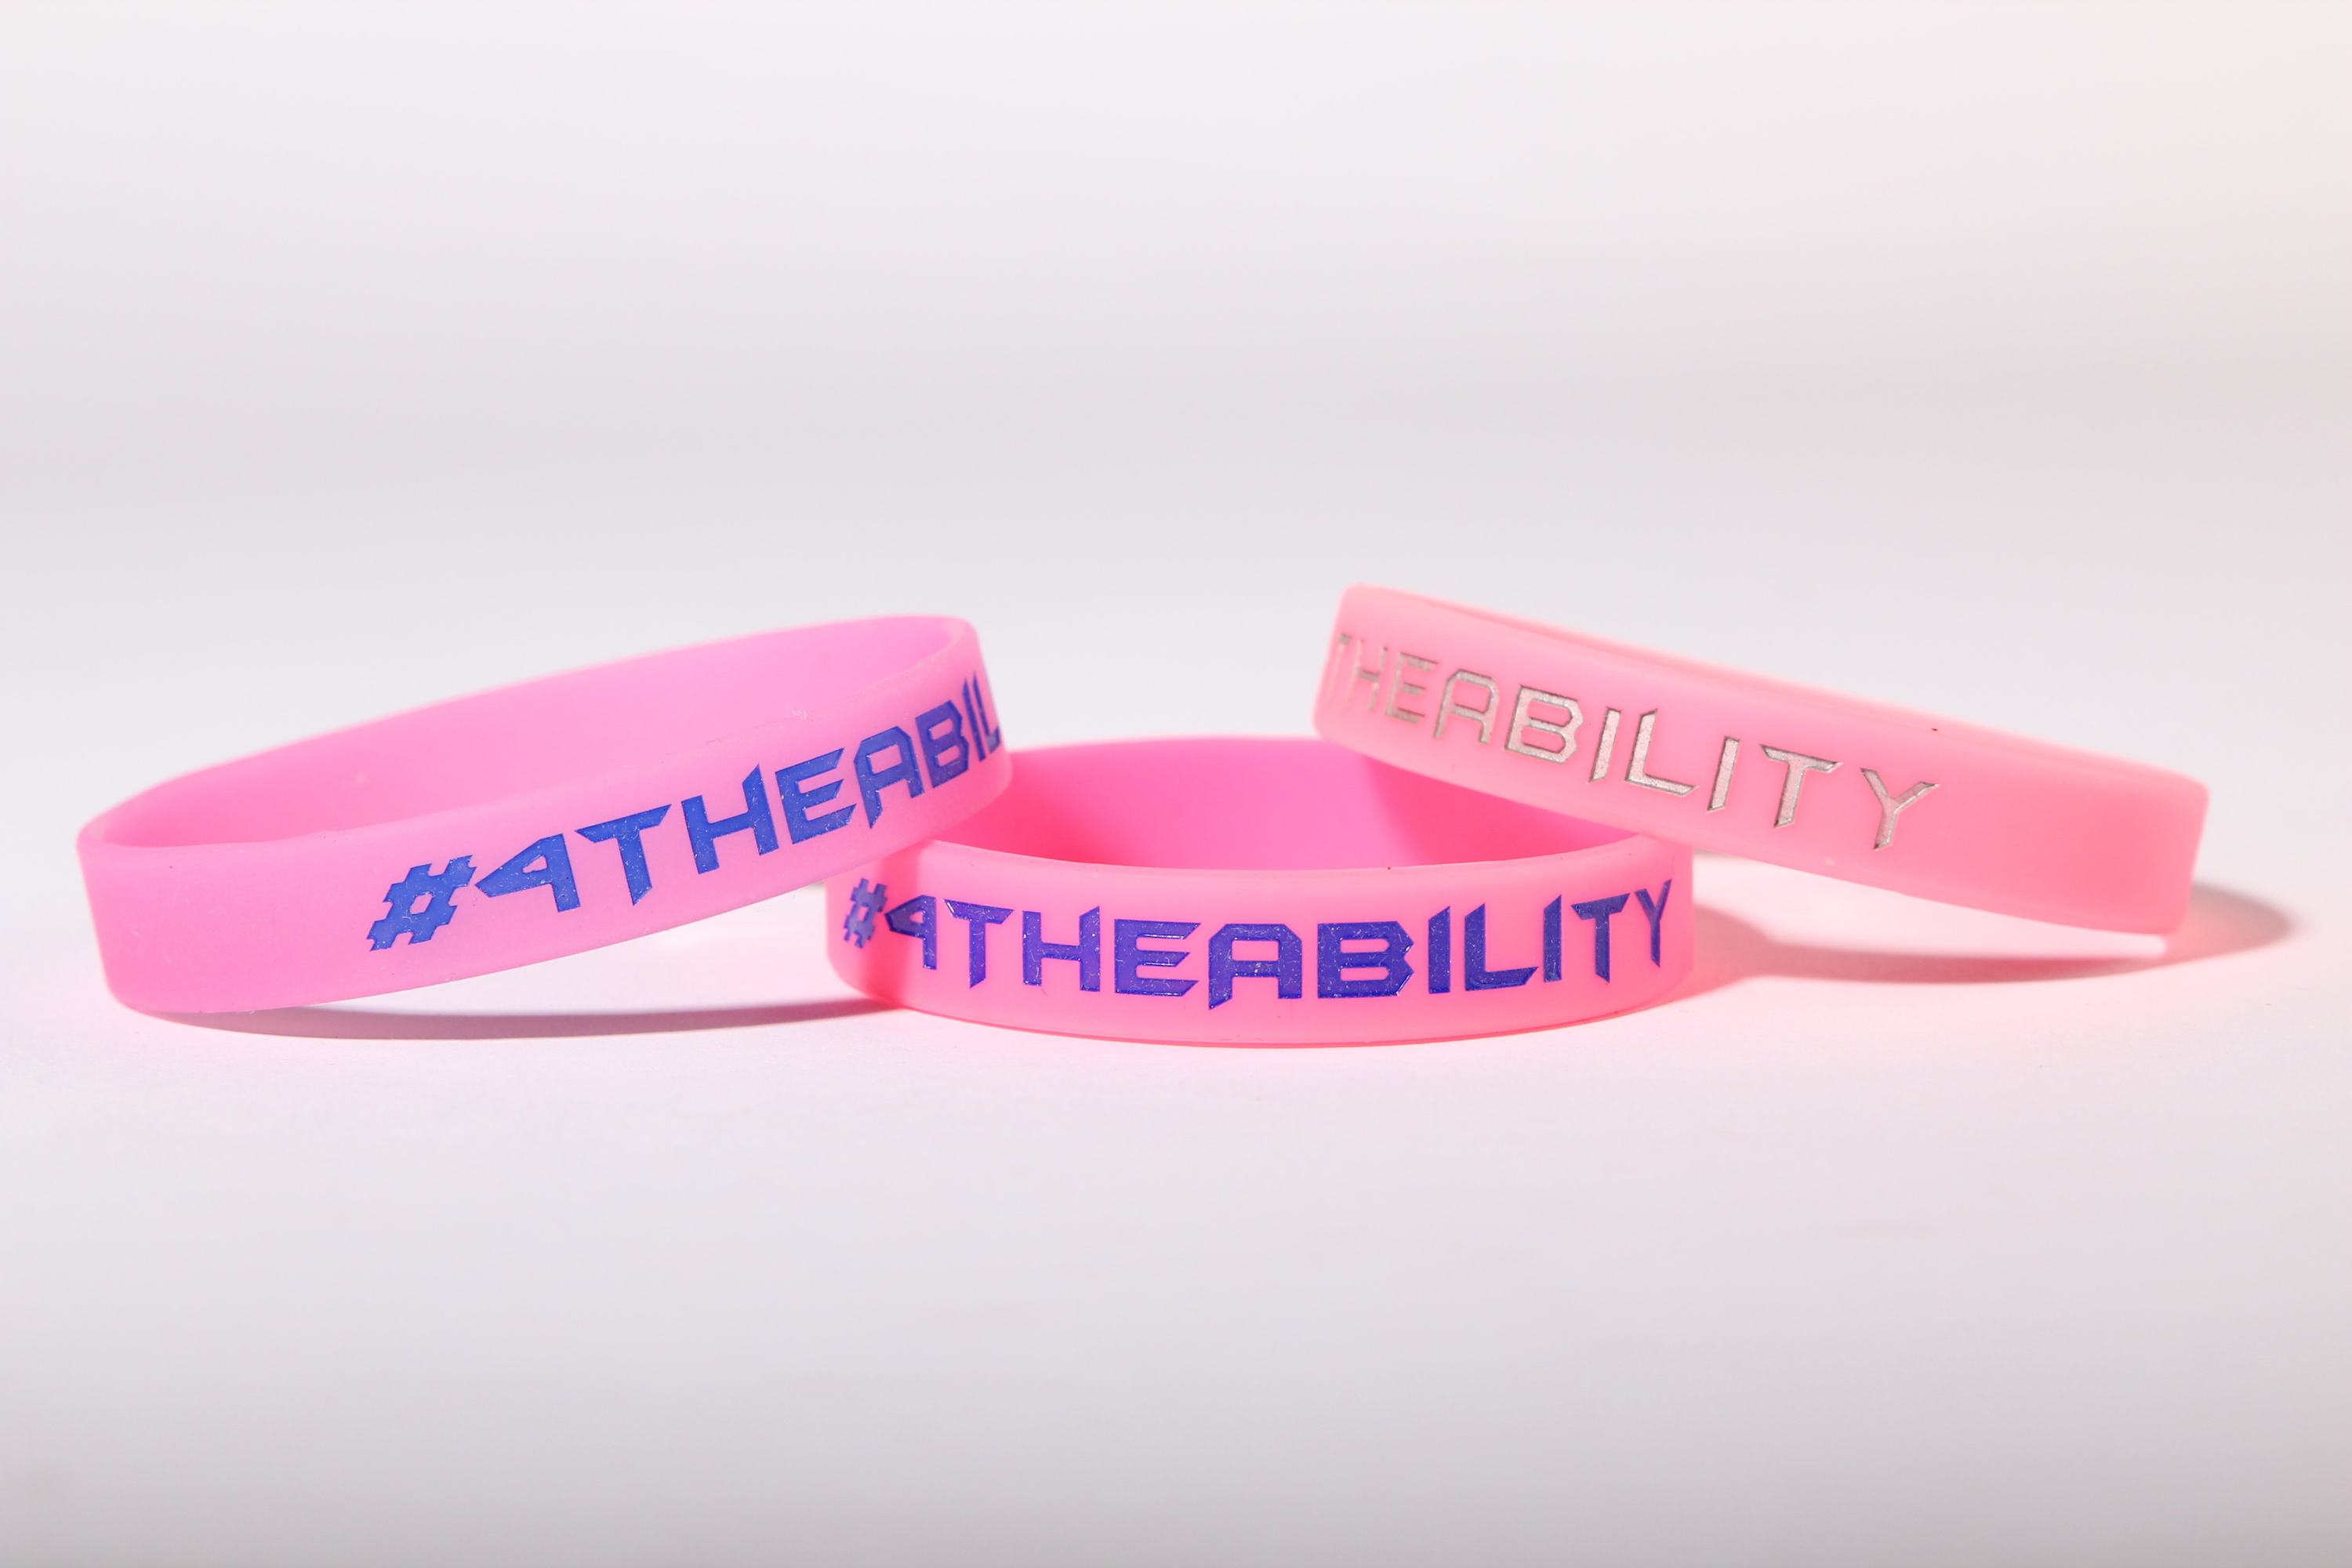 Why You Should Support #4TheAbility